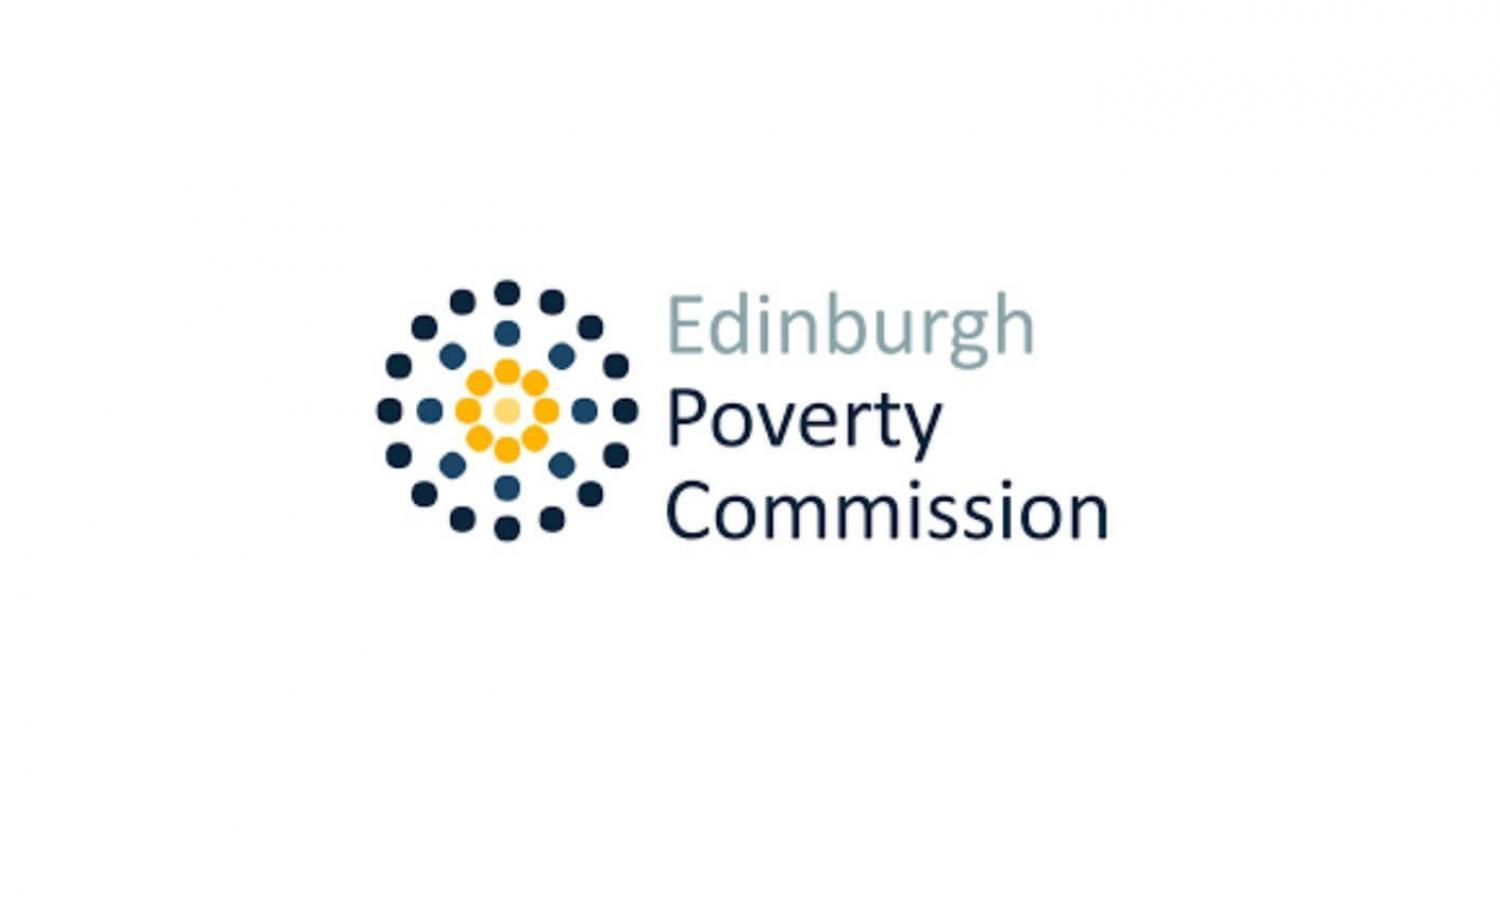 Edinburgh Poverty Commission logo